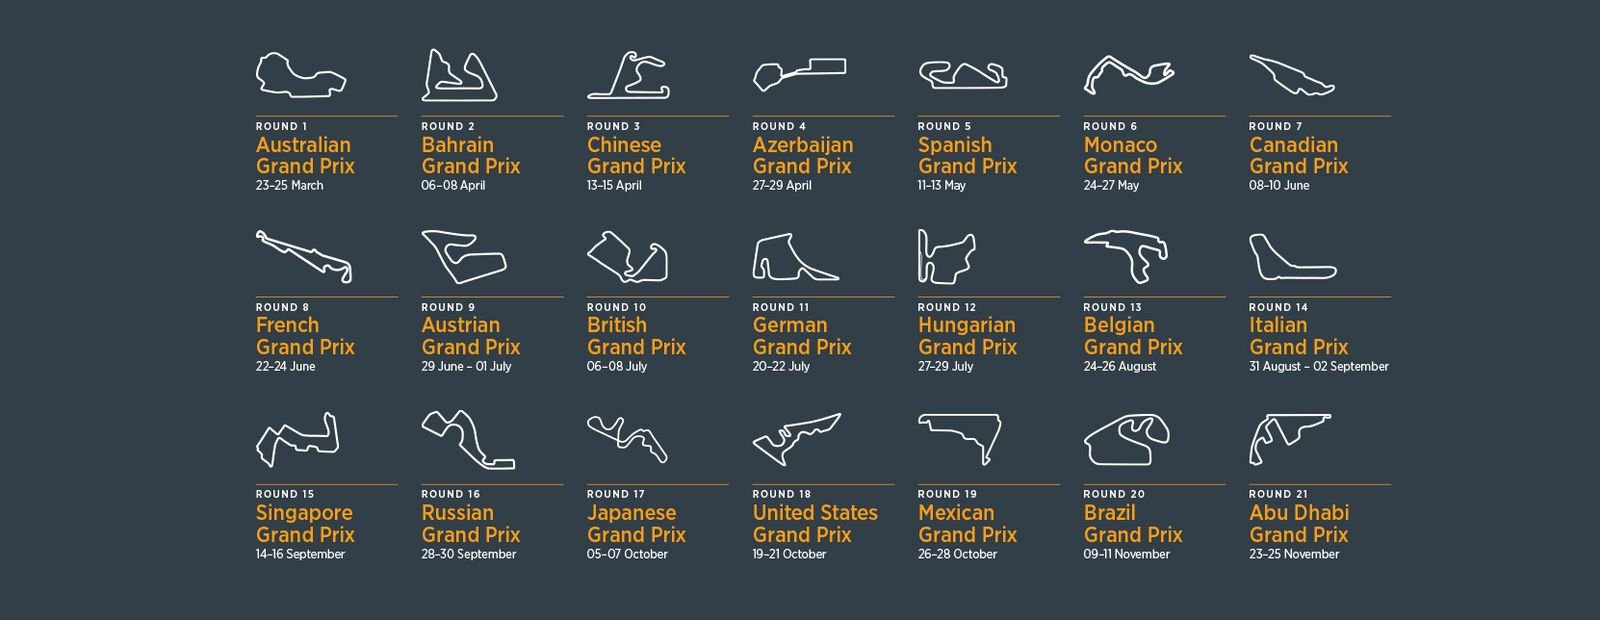 Mclaren Racing - 2018 F1 Toolkit Formula 1 Calendar 2019 Download